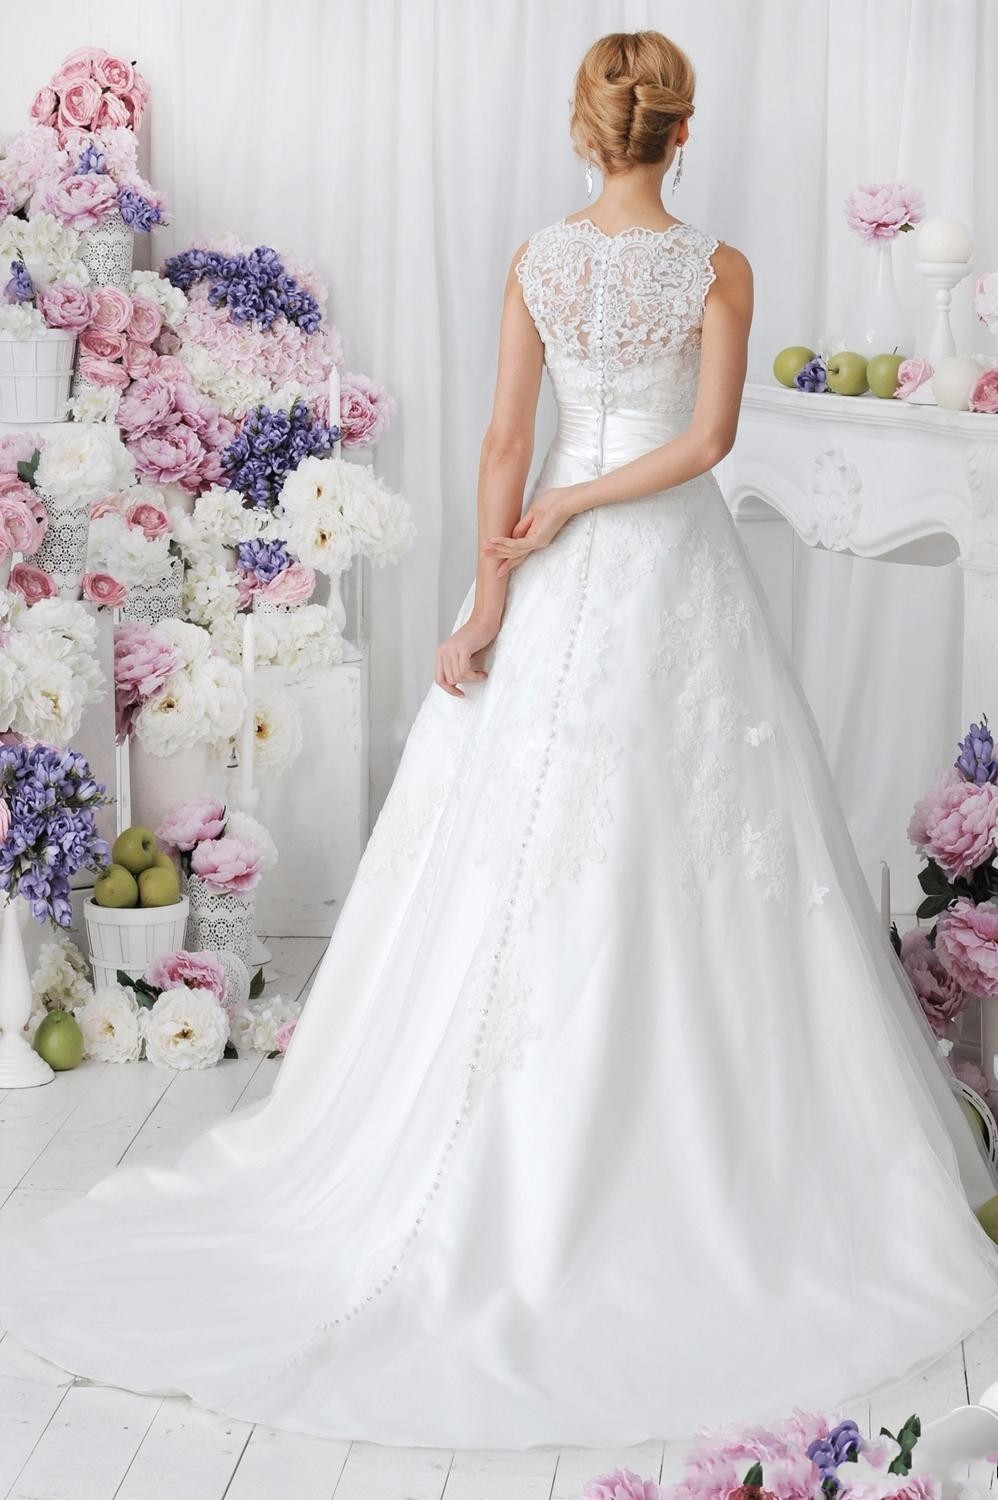 Lace Wedding Dress With Detachable Skirt at Bling Brides Bouquet online bridal s